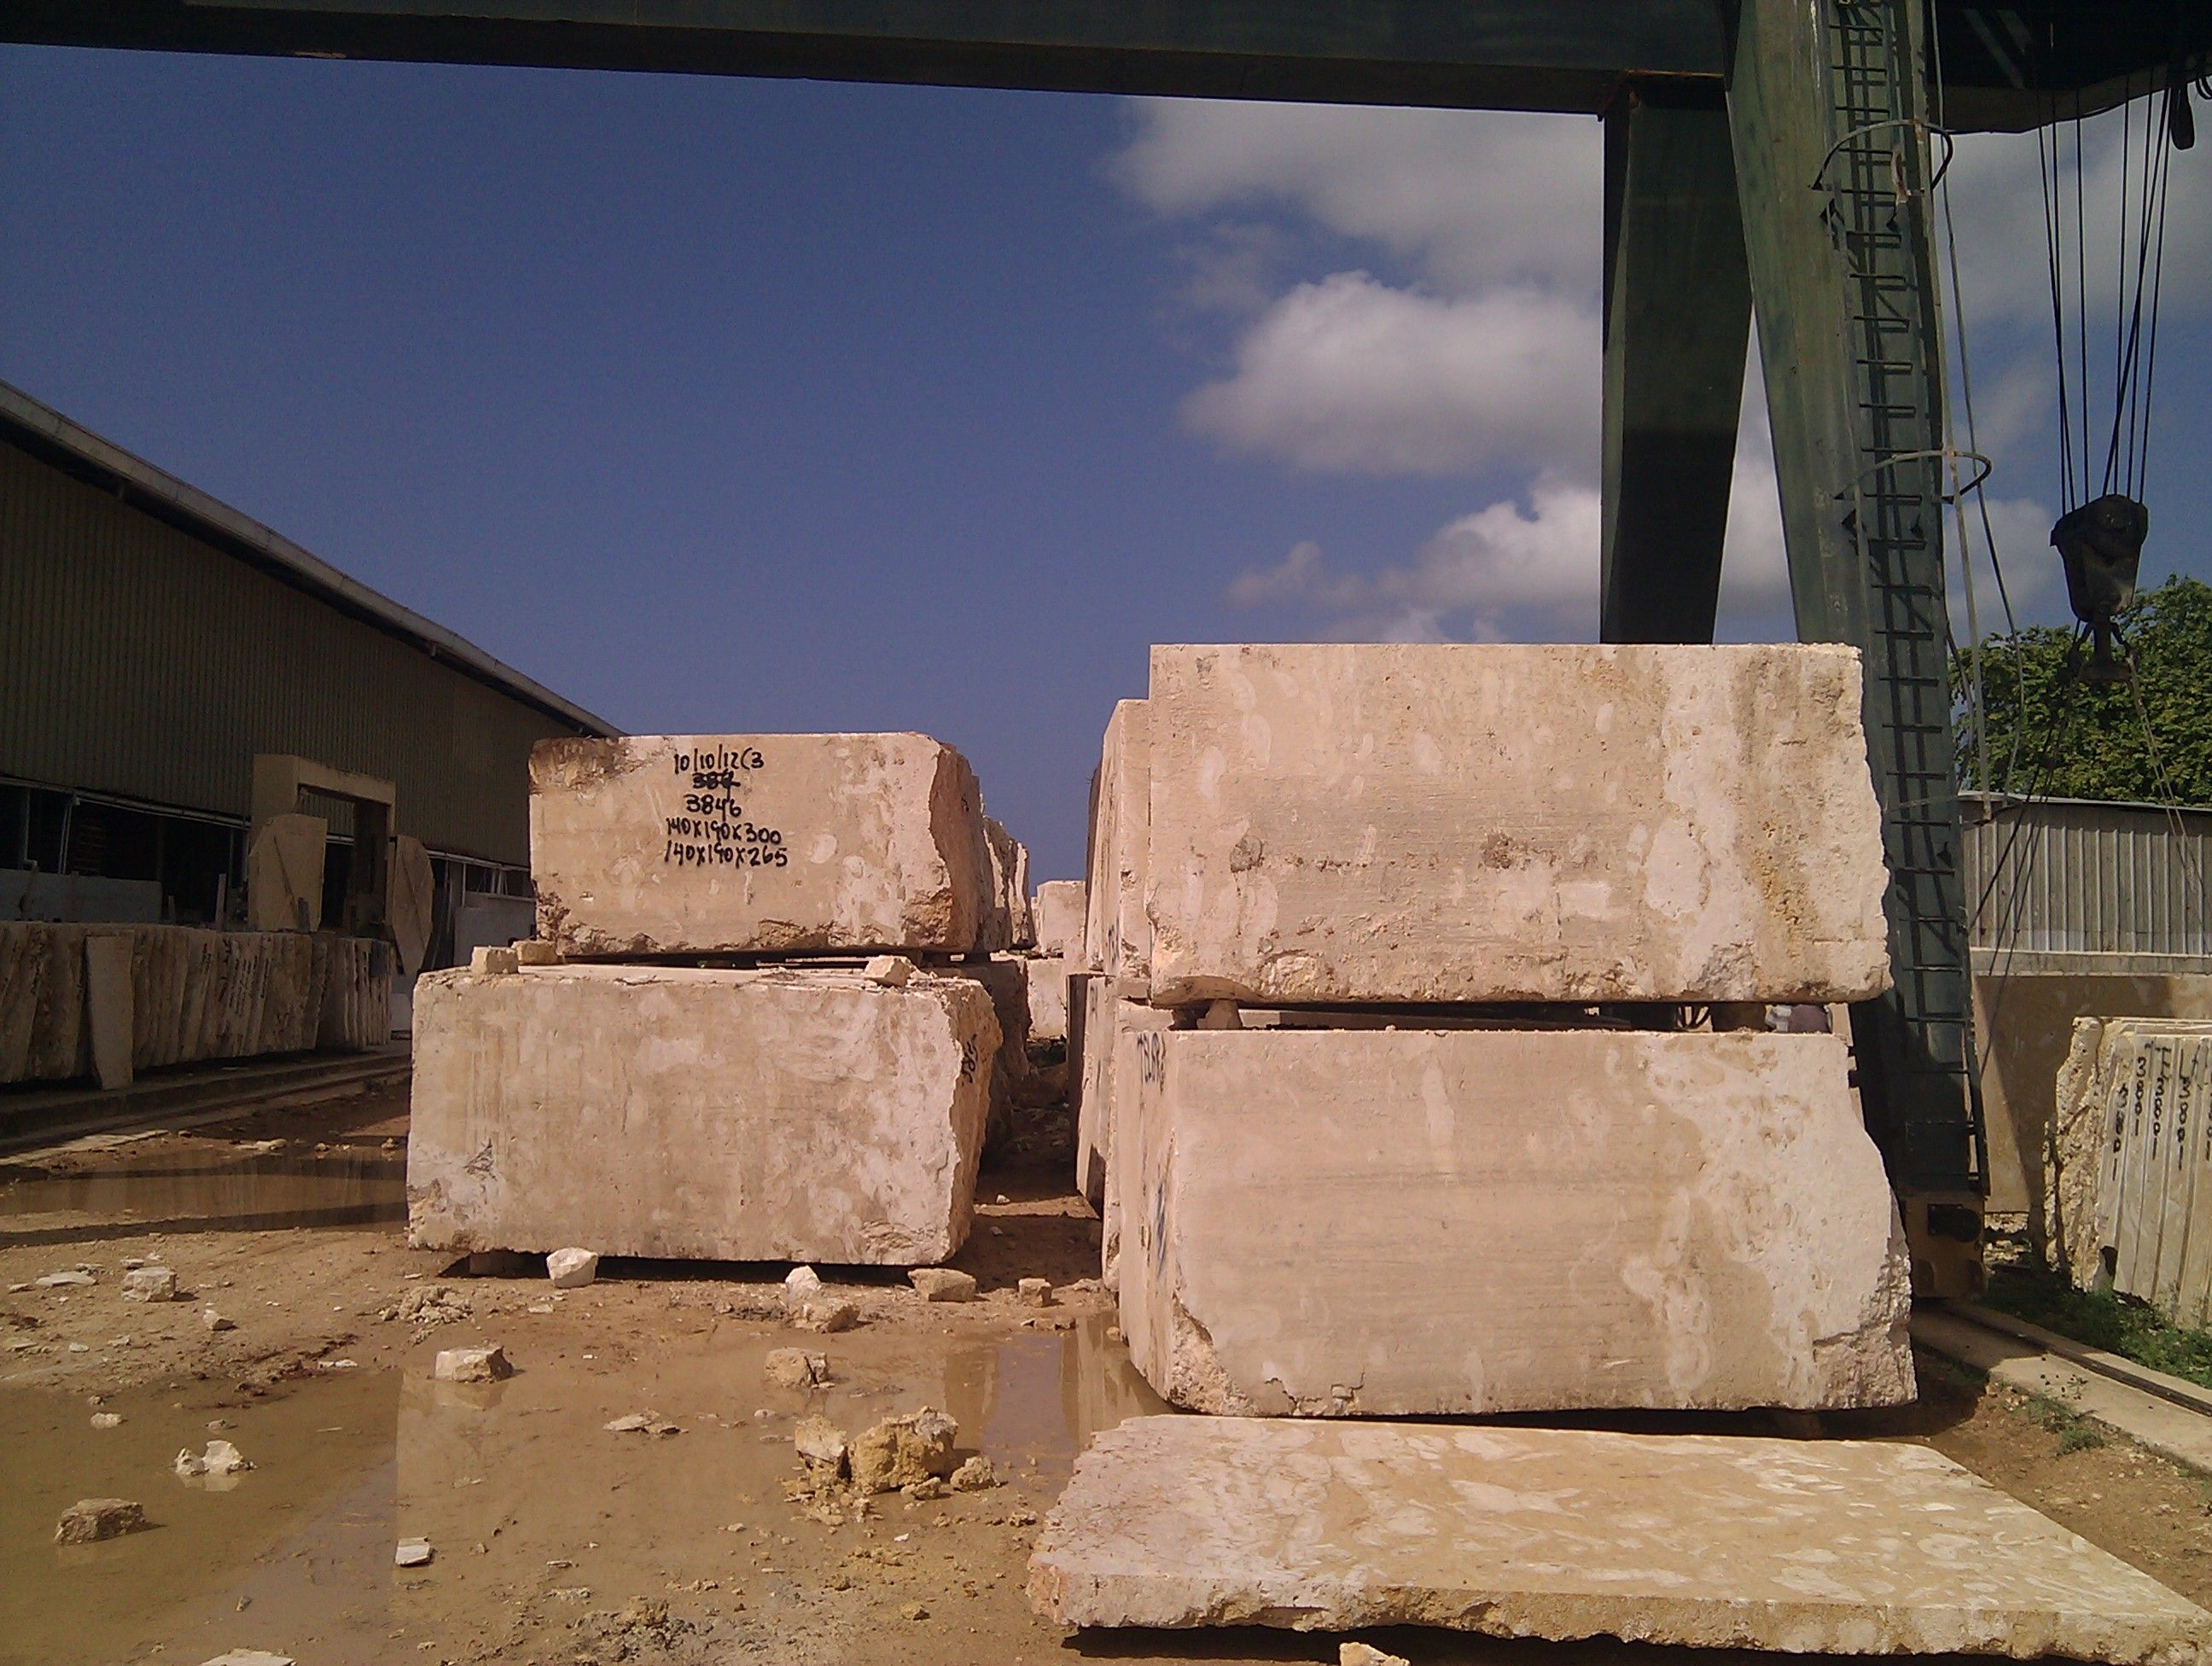 Factory / Quarry. Coral Stone Blocks to Produce Floor Tiles / Slabs